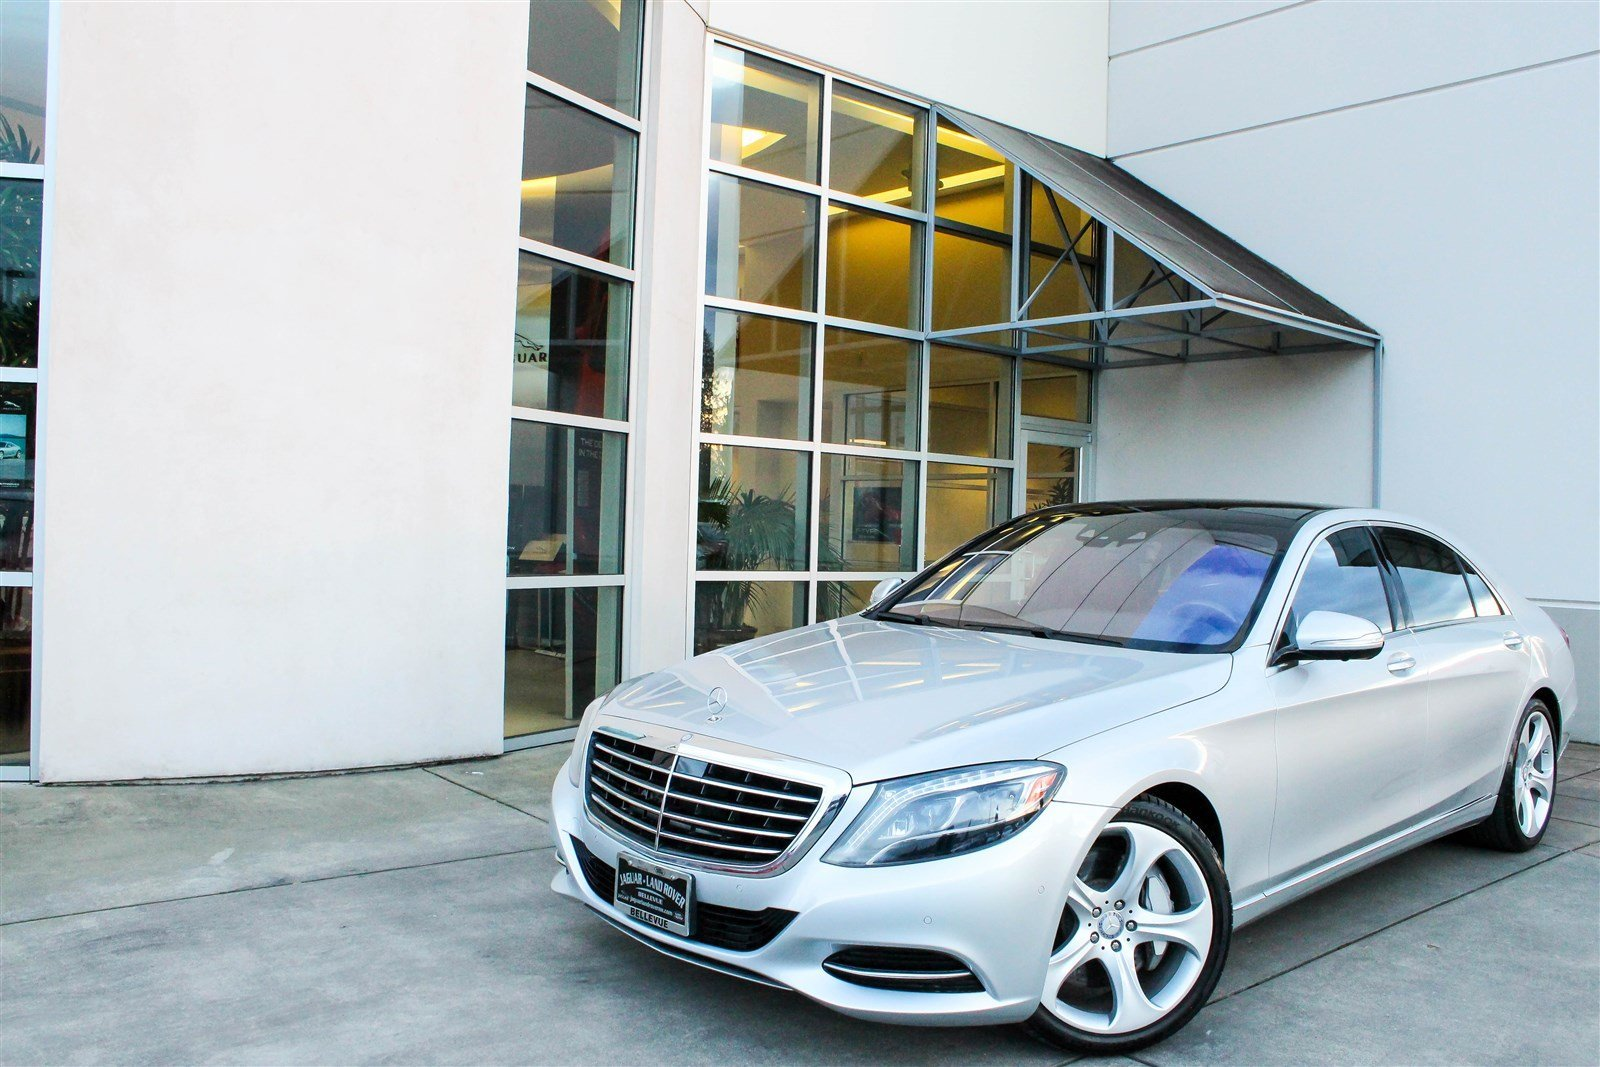 Pre owned 2014 mercedes benz s class s 550 4dr car in for Pre owned mercedes benz s class